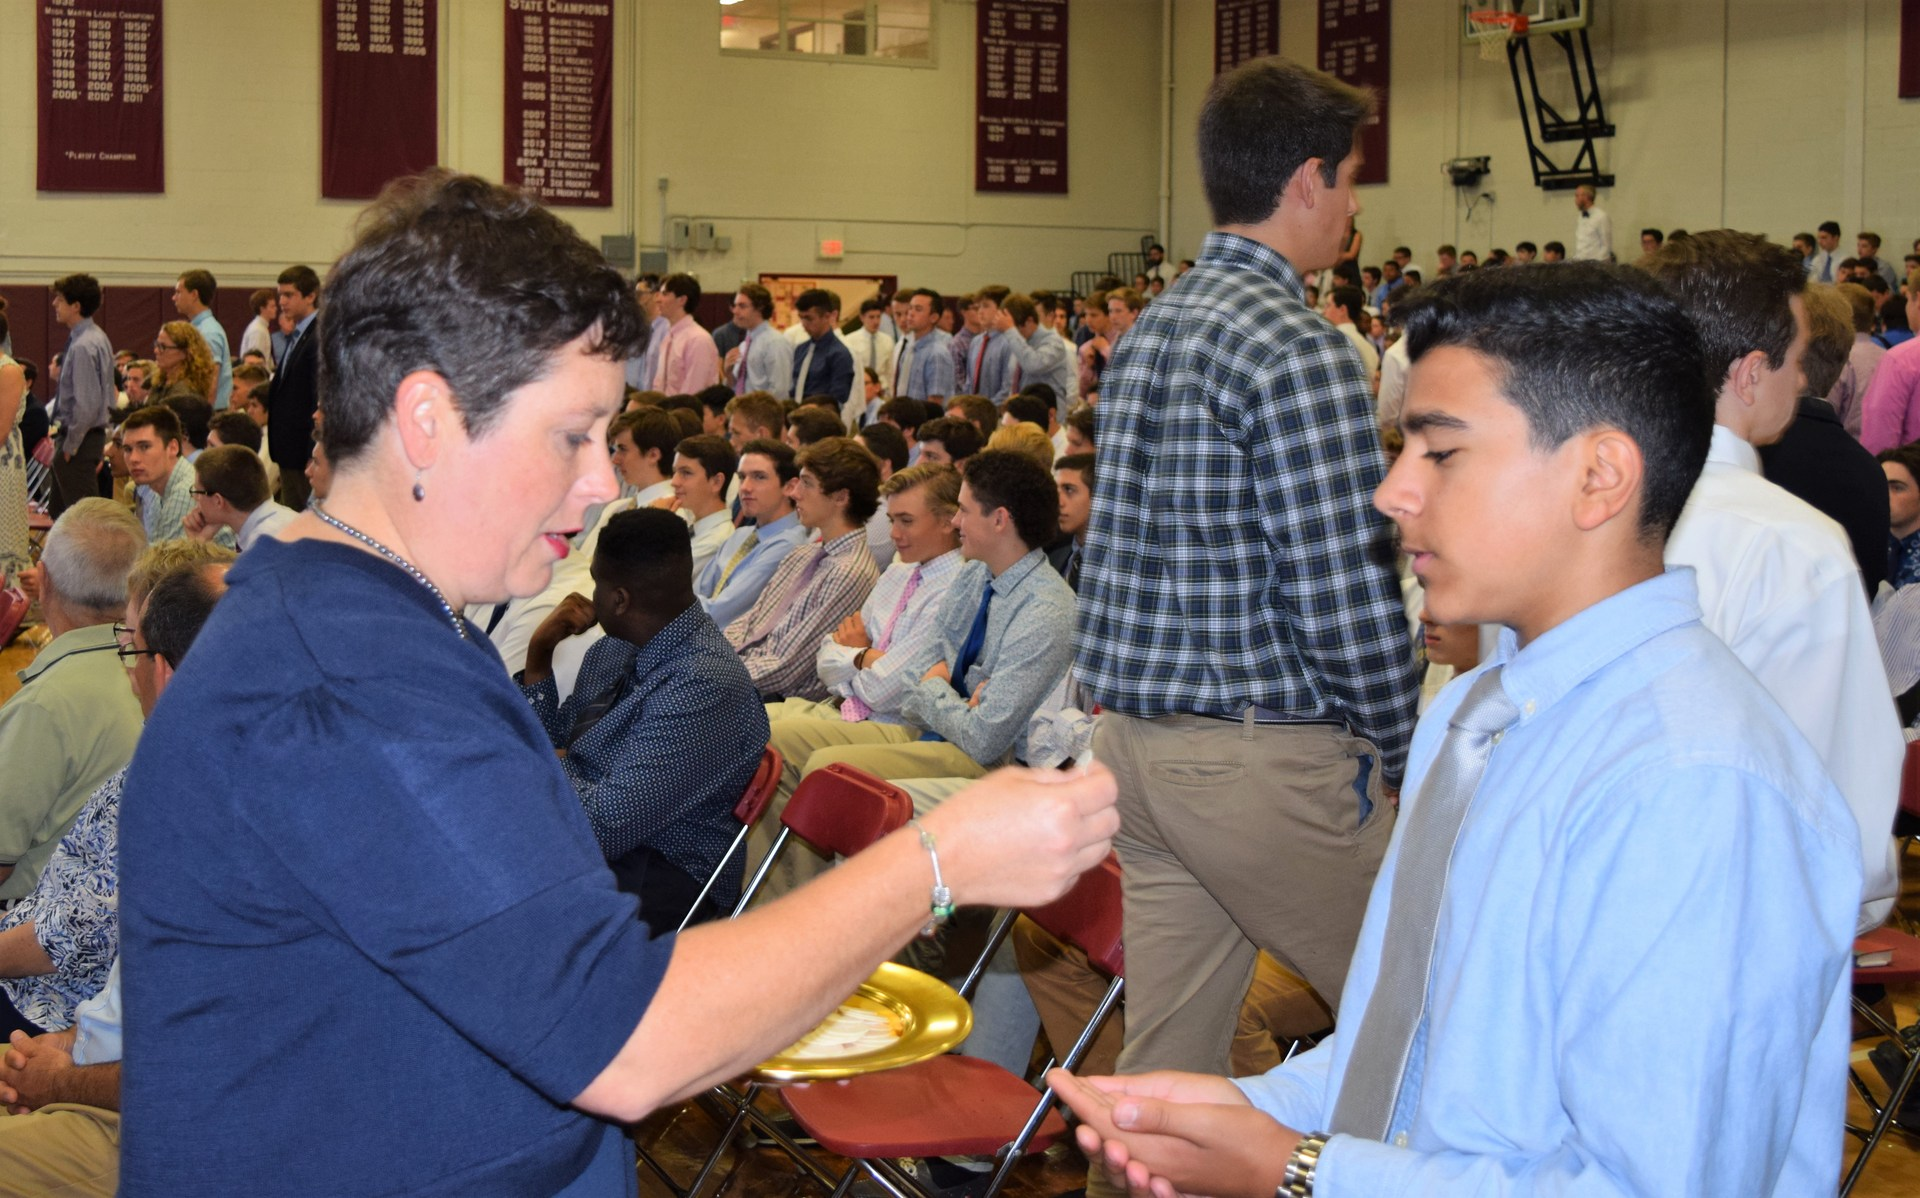 Student receiving communion